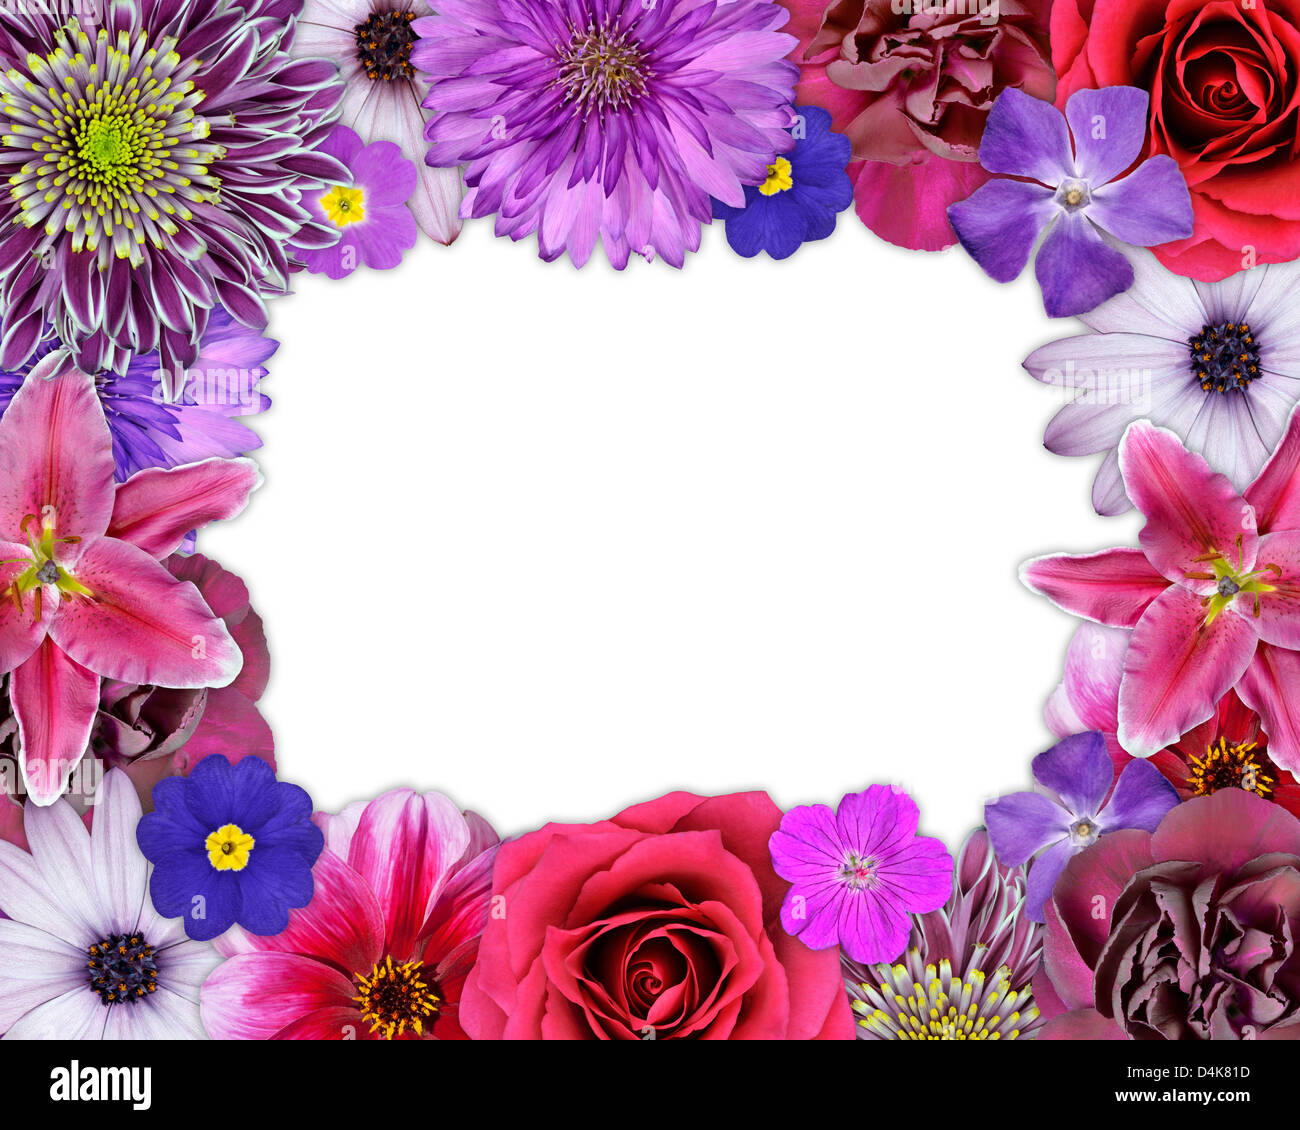 Flower frame collection pink purple blue red white set dahlia stock flower frame collection pink purple blue red white set dahlia chrysanthemum daisy cornflower periwinkle carnation isolated on wh mightylinksfo